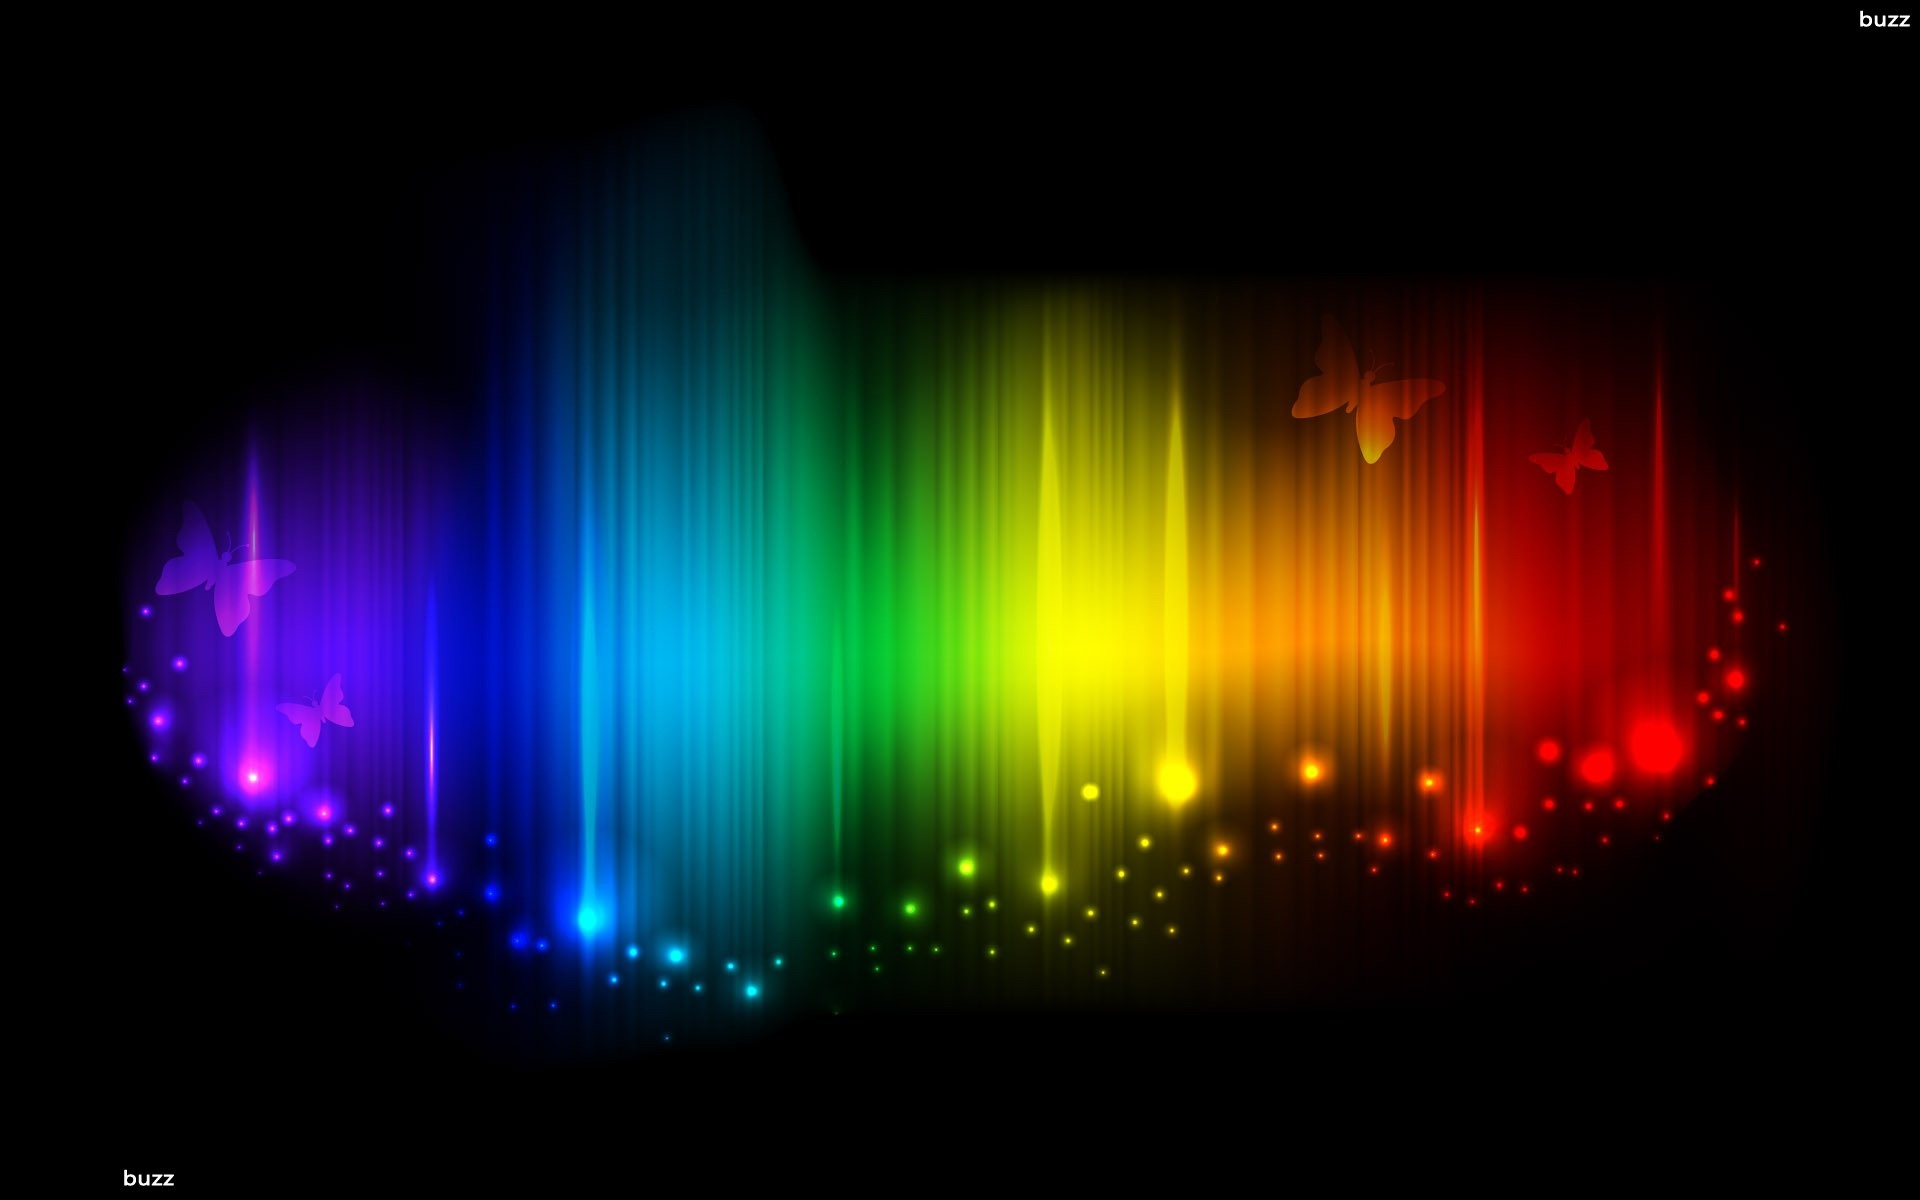 1920x1200 Abstract Backgrounds : The Colours of Rainbow - Rainbow Colors Abstract  Backgrounds 45